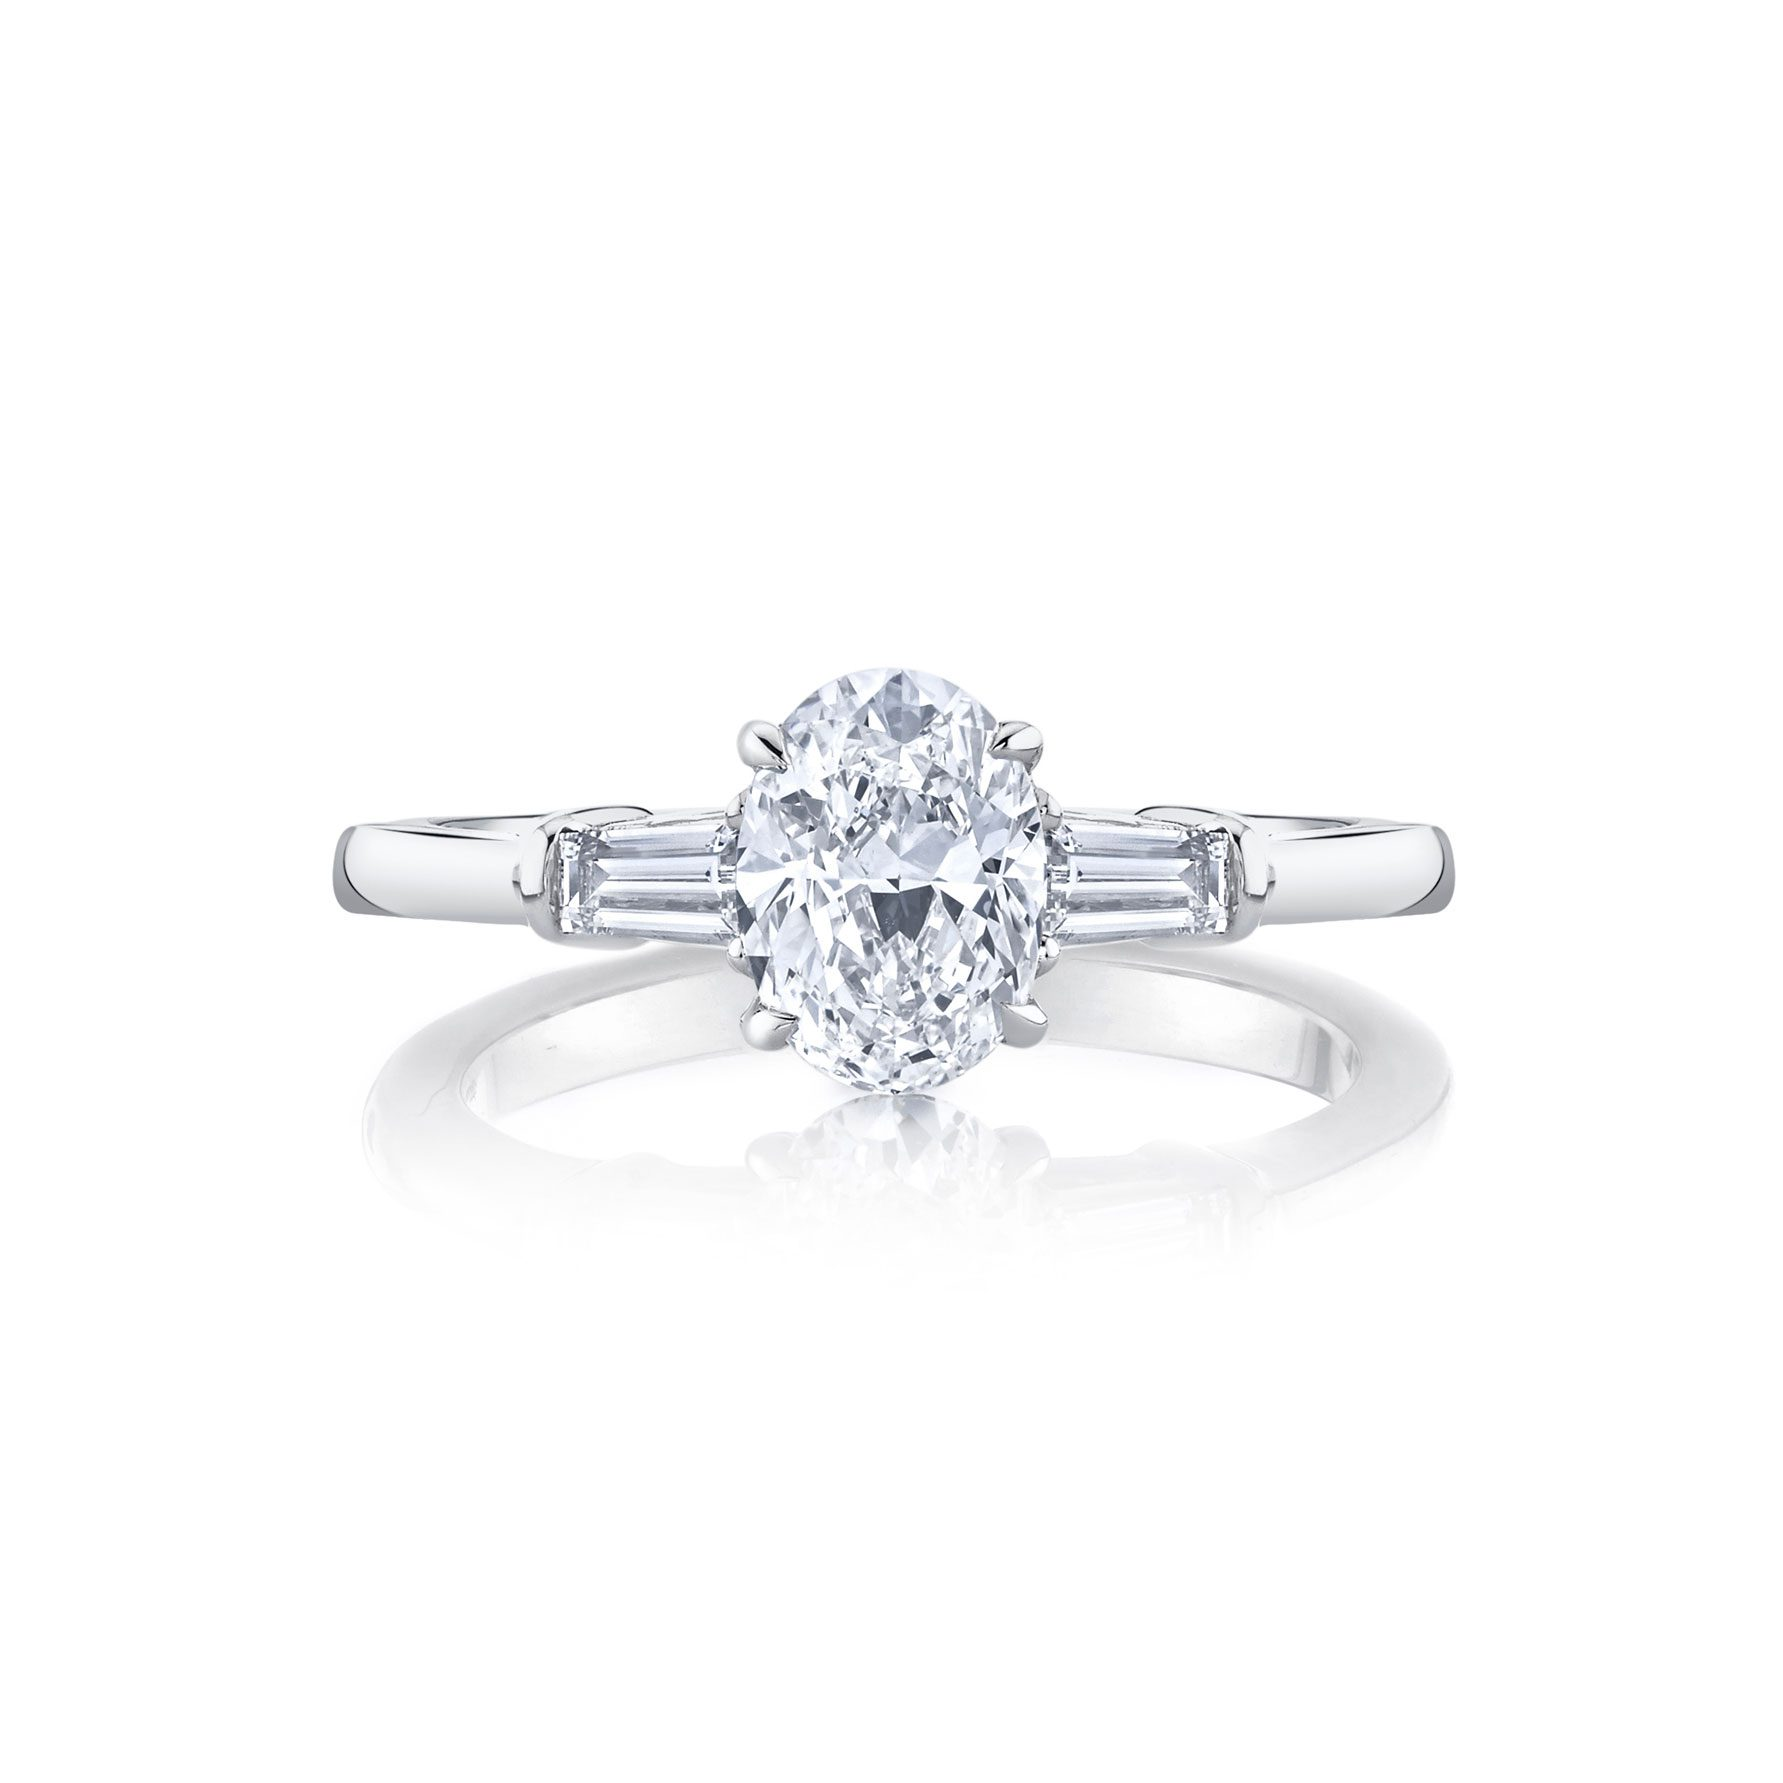 Claire Oval Three Stone Engagement Ring with tapered baguette diamond side stones in 18k White Gold Front View by Oui by Jean Dousset